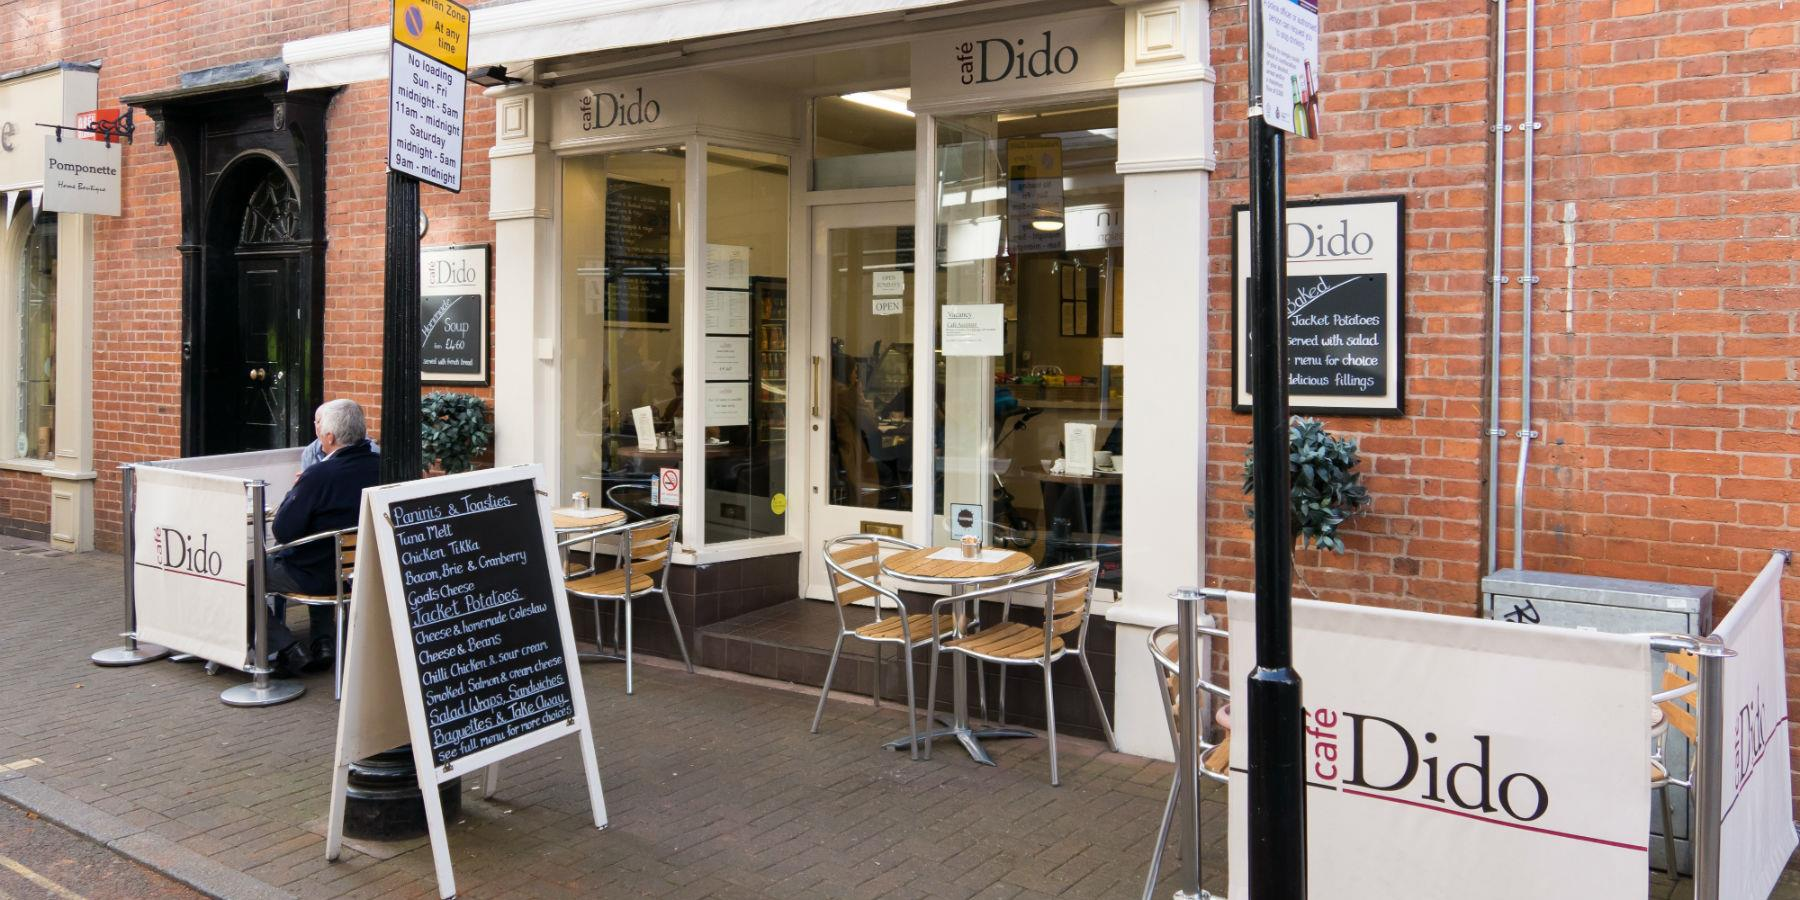 Cafe Dido, Cafes - Eating and Drinking in Leicester